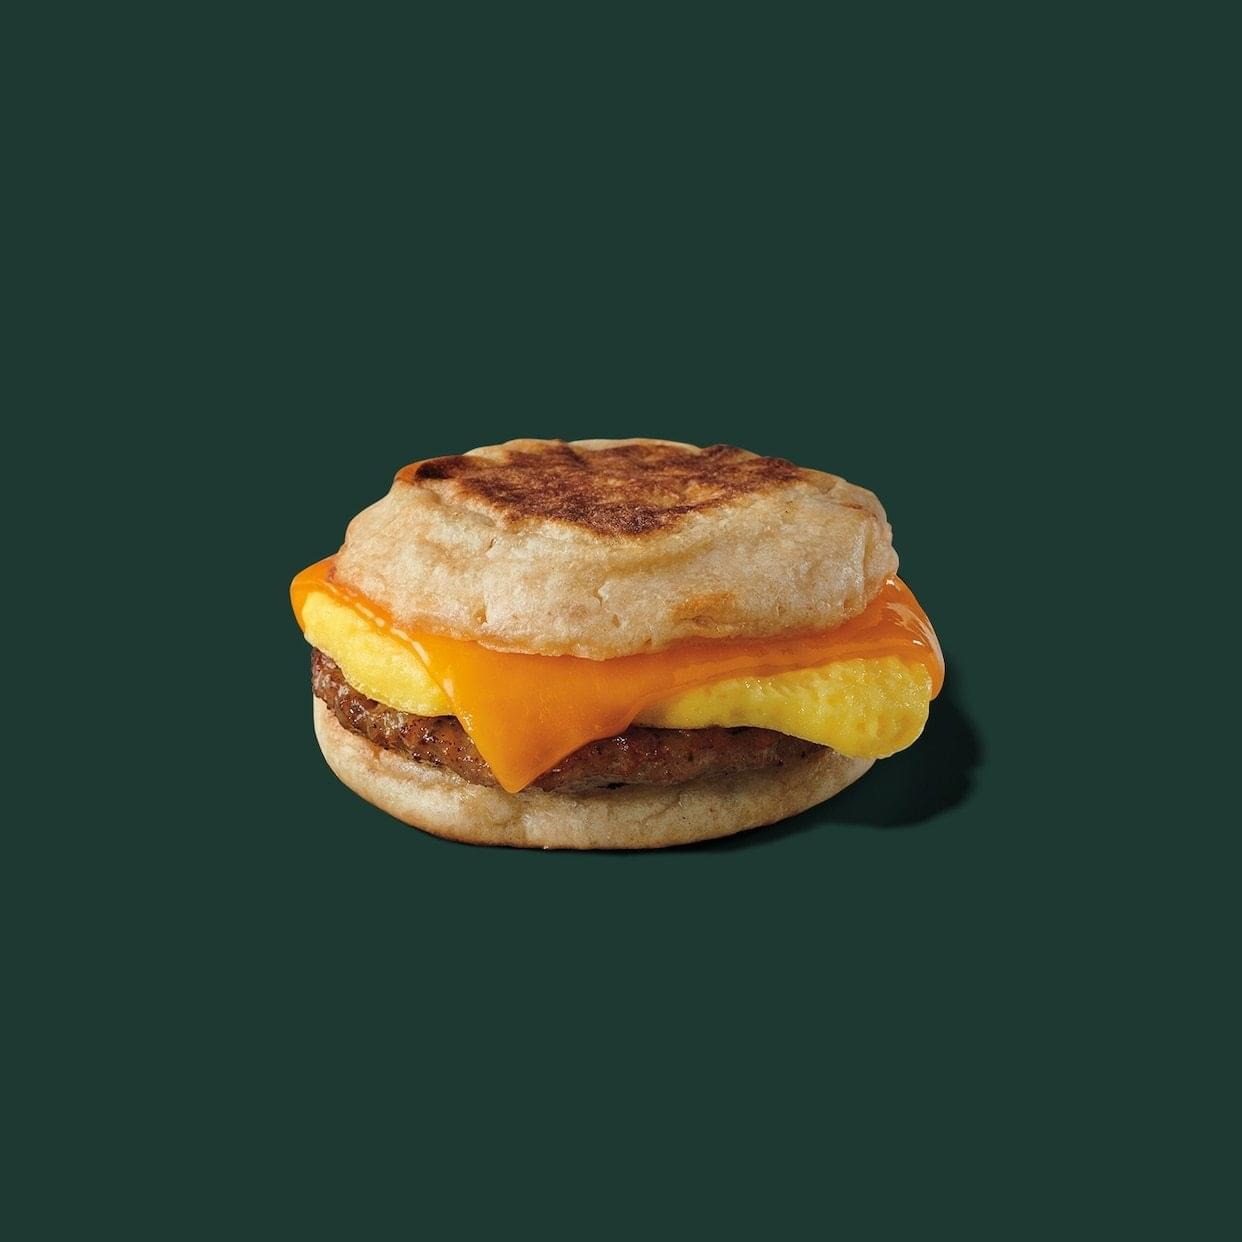 Starbucks Sausage, Cheddar & Egg Breakfast Sandwich Nutrition Facts